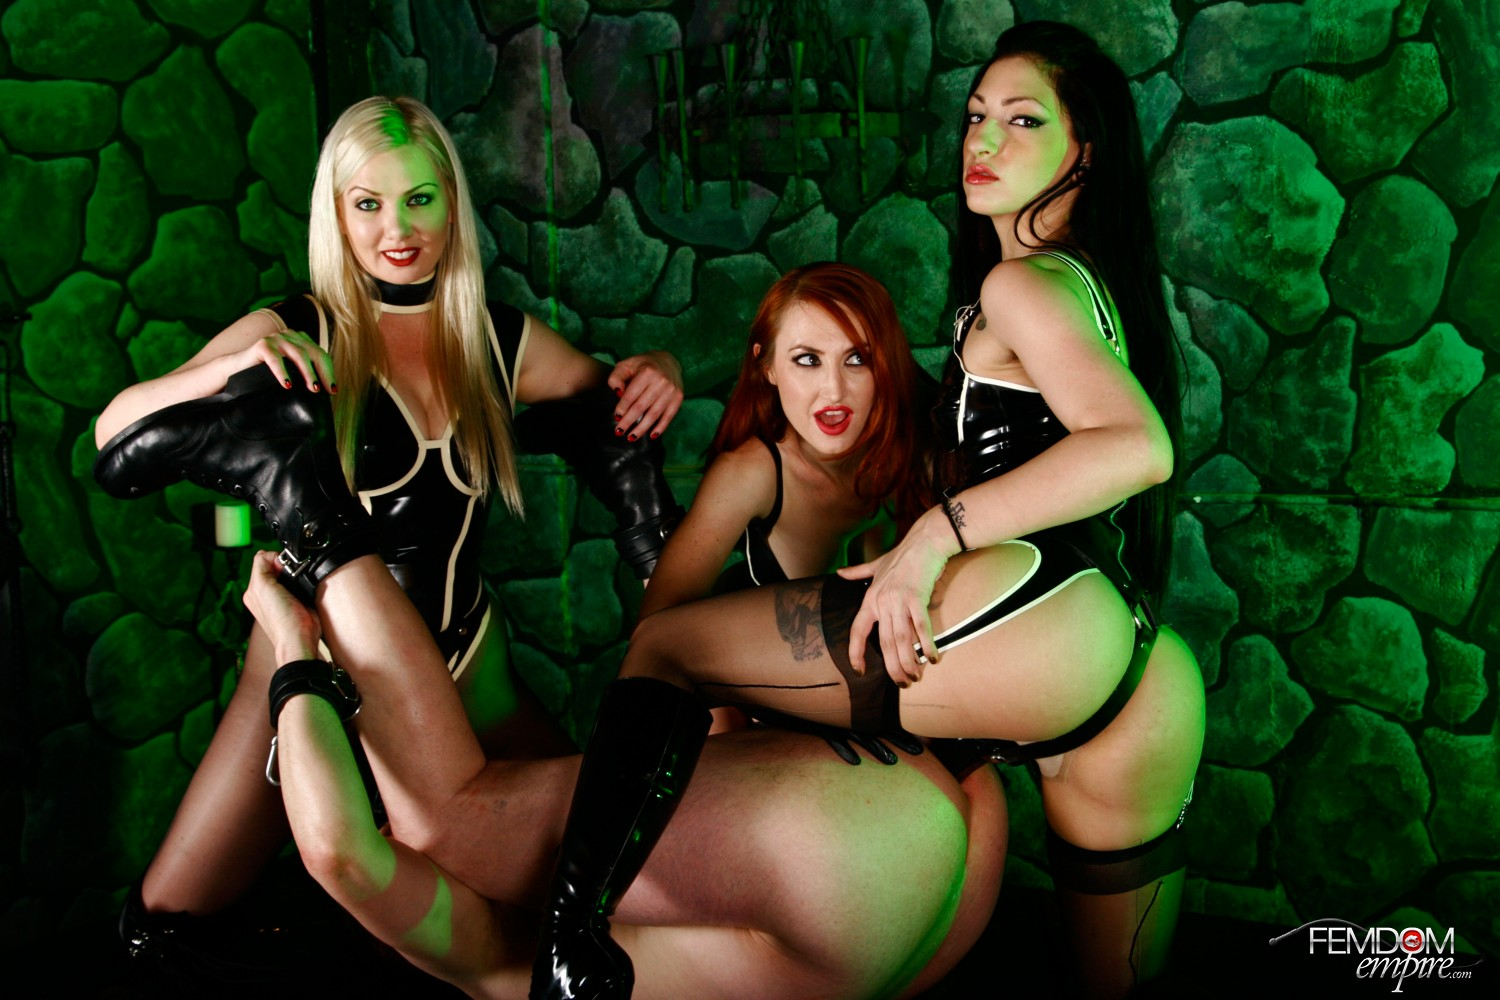 Mistresses Lexi Sindel, Cybill Troy, and Kendra James are the Strapon All Stars!